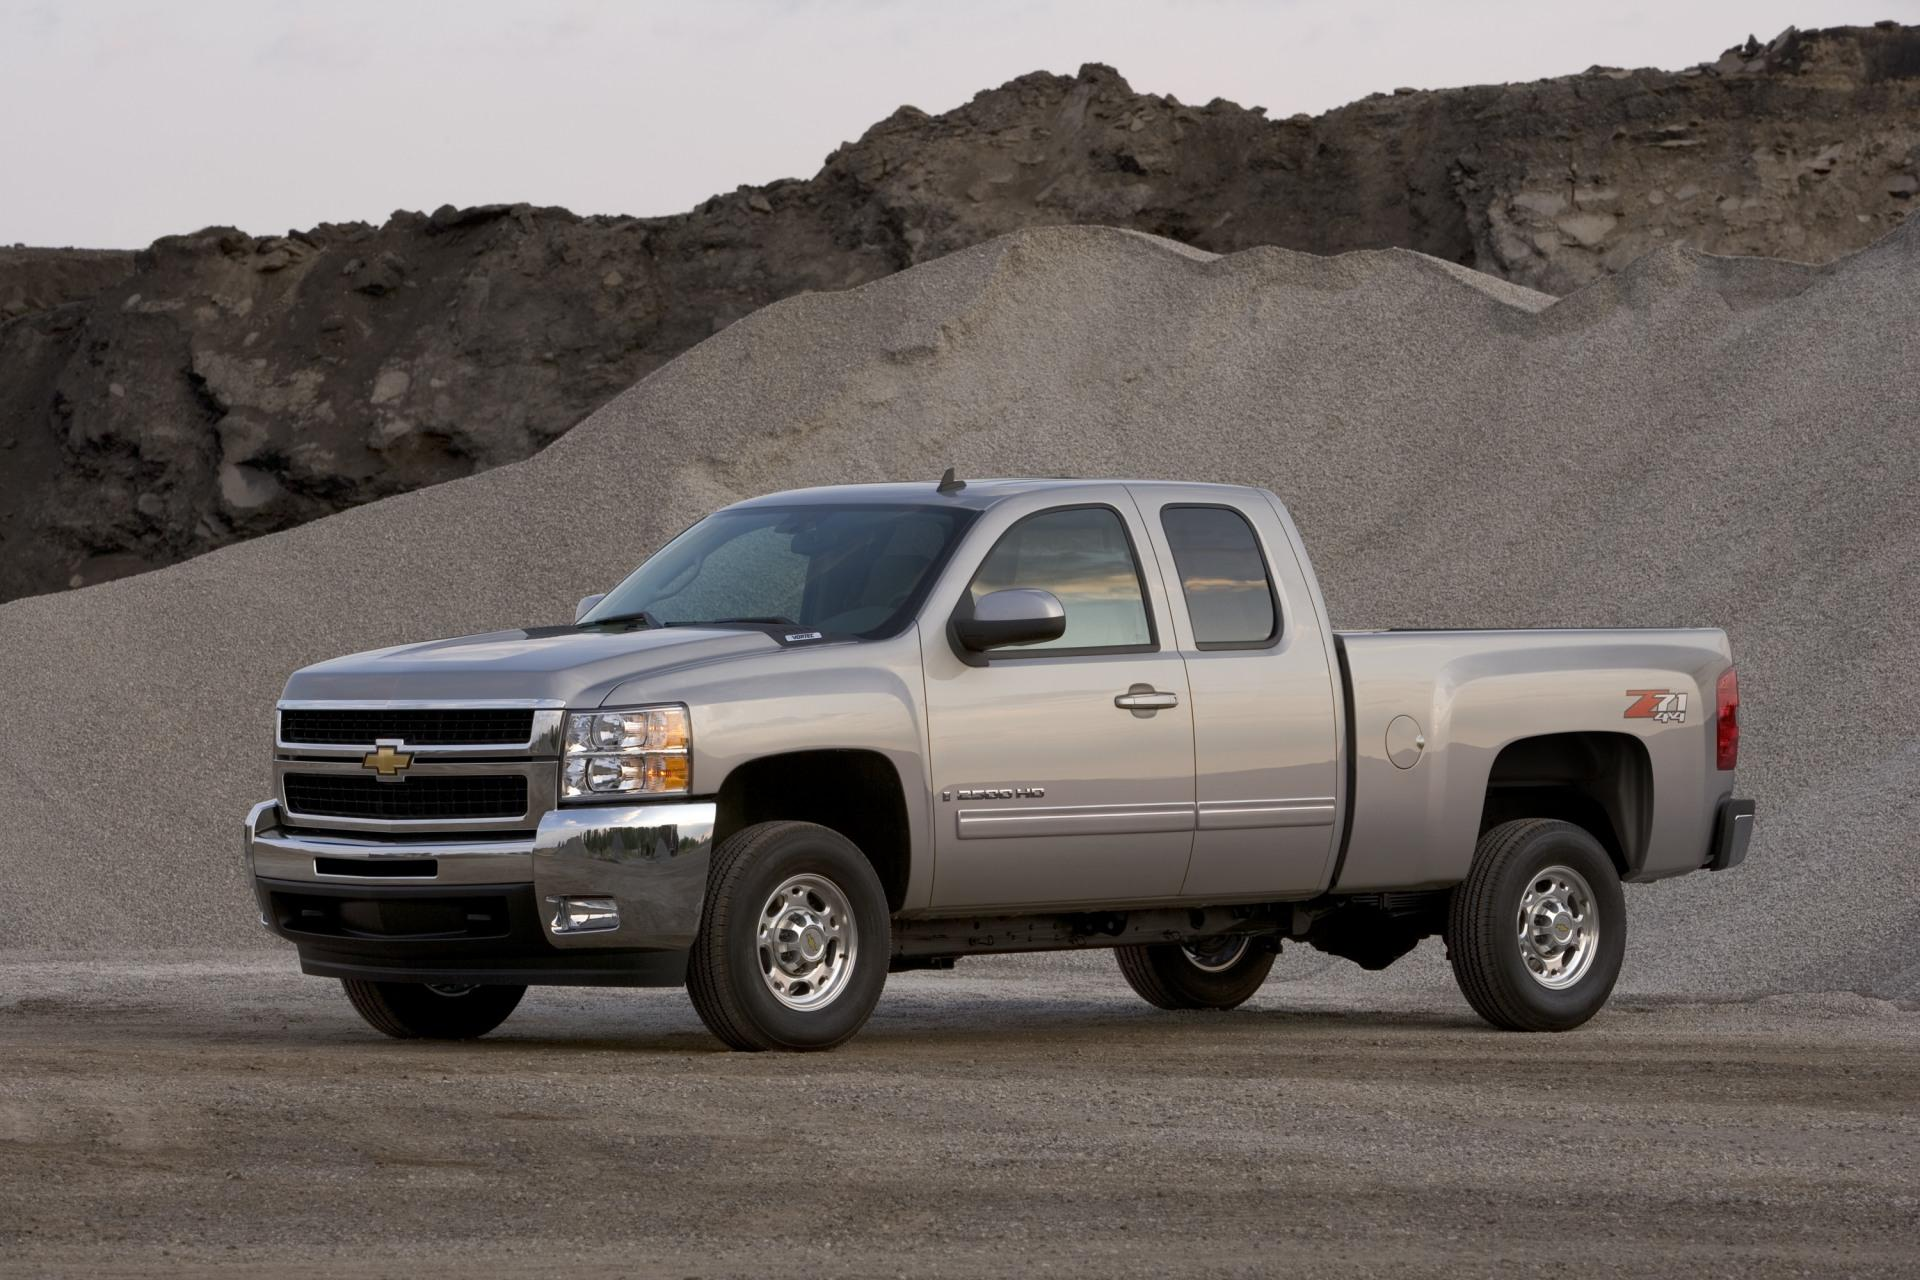 2010 Chevrolet Silverado News and Information